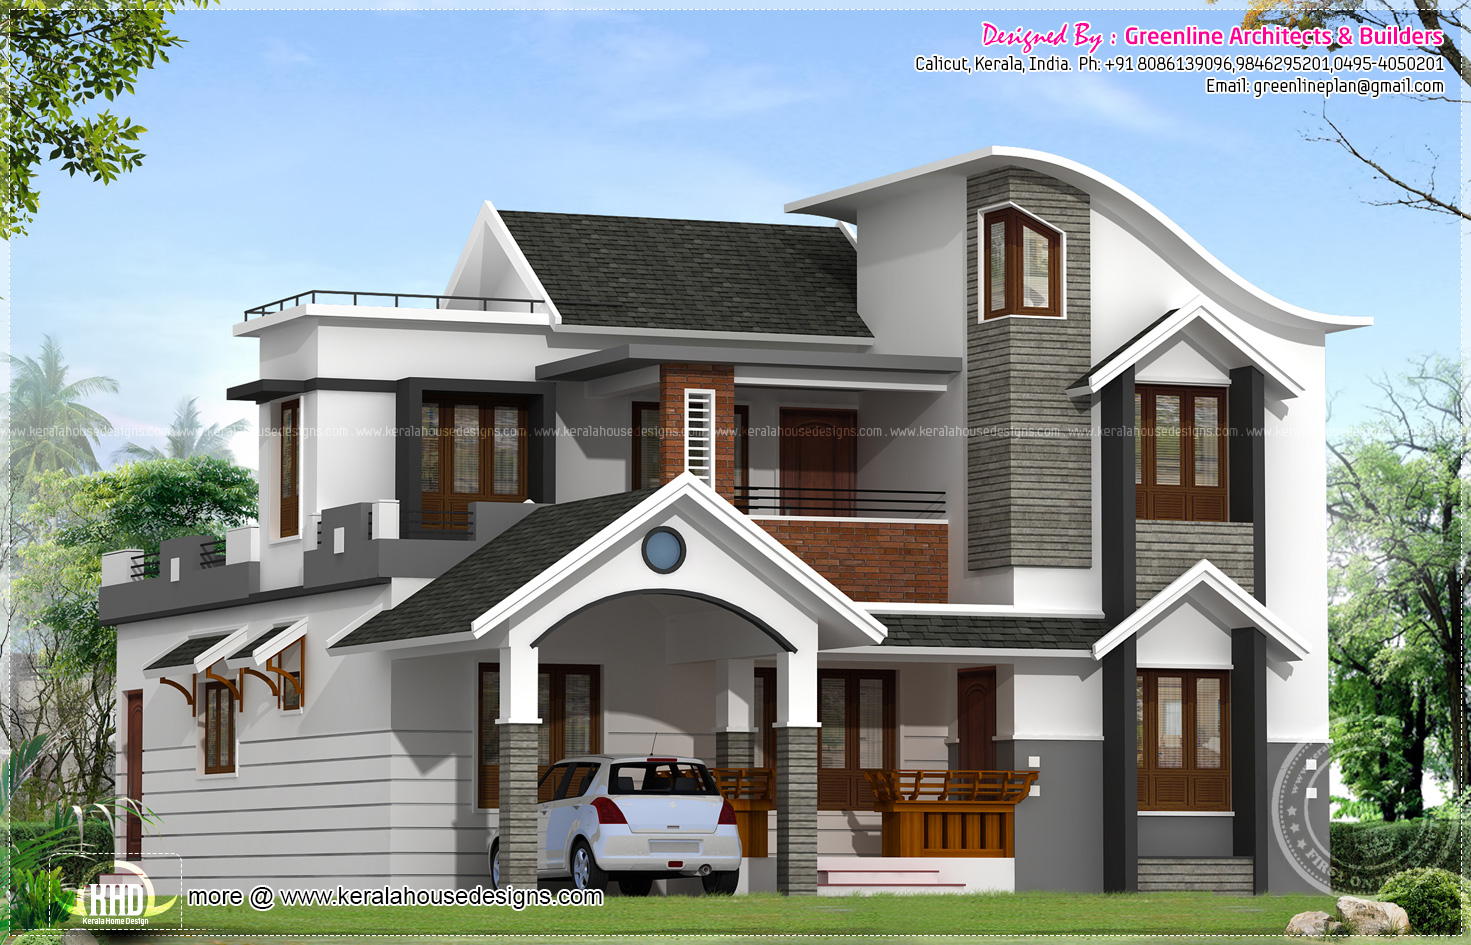 Modern house architecture in kerala kerala home design for Contemporary house in kerala